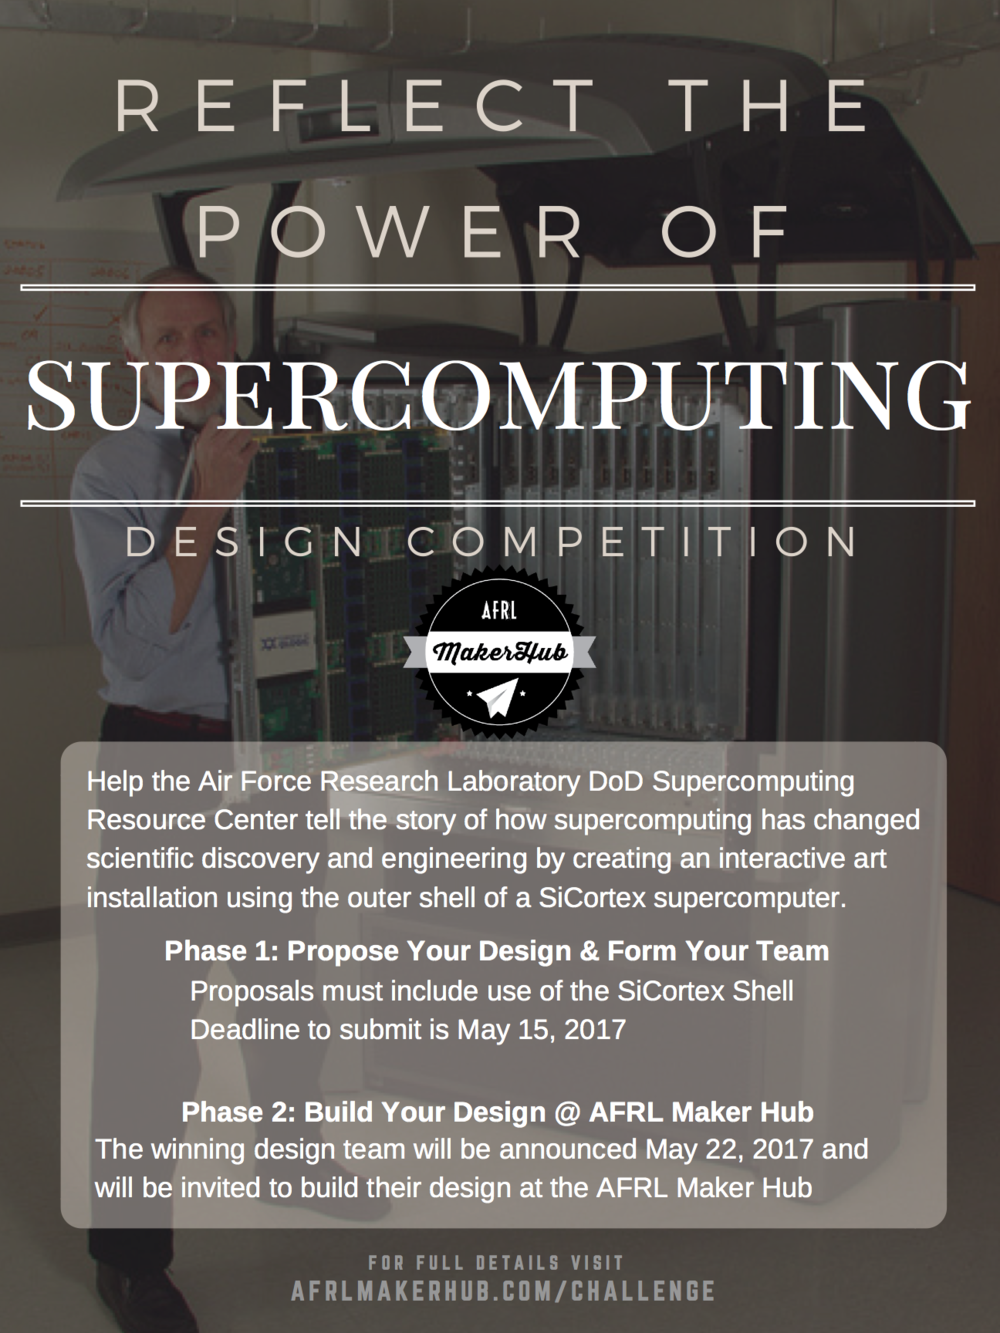 Reflect the Power of Supercomputing